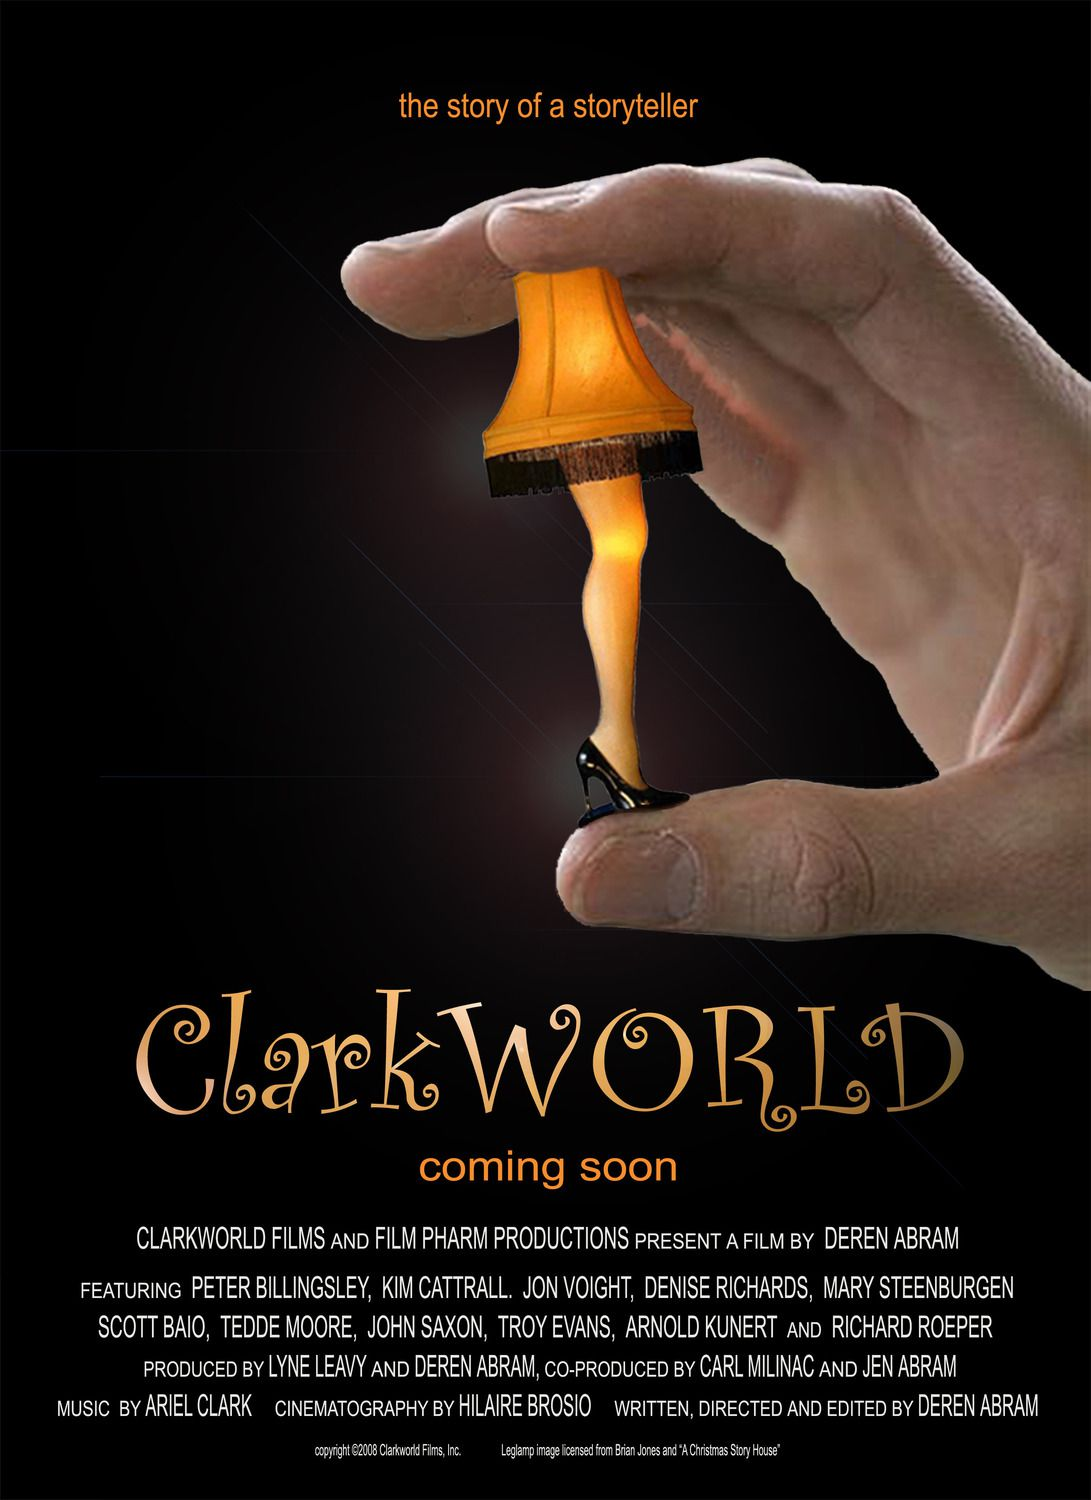 Clarkworld (2009) - Cast: Bob Clark, Kim Cattrall, Jon Voight, Mary Steenburgen - film poster